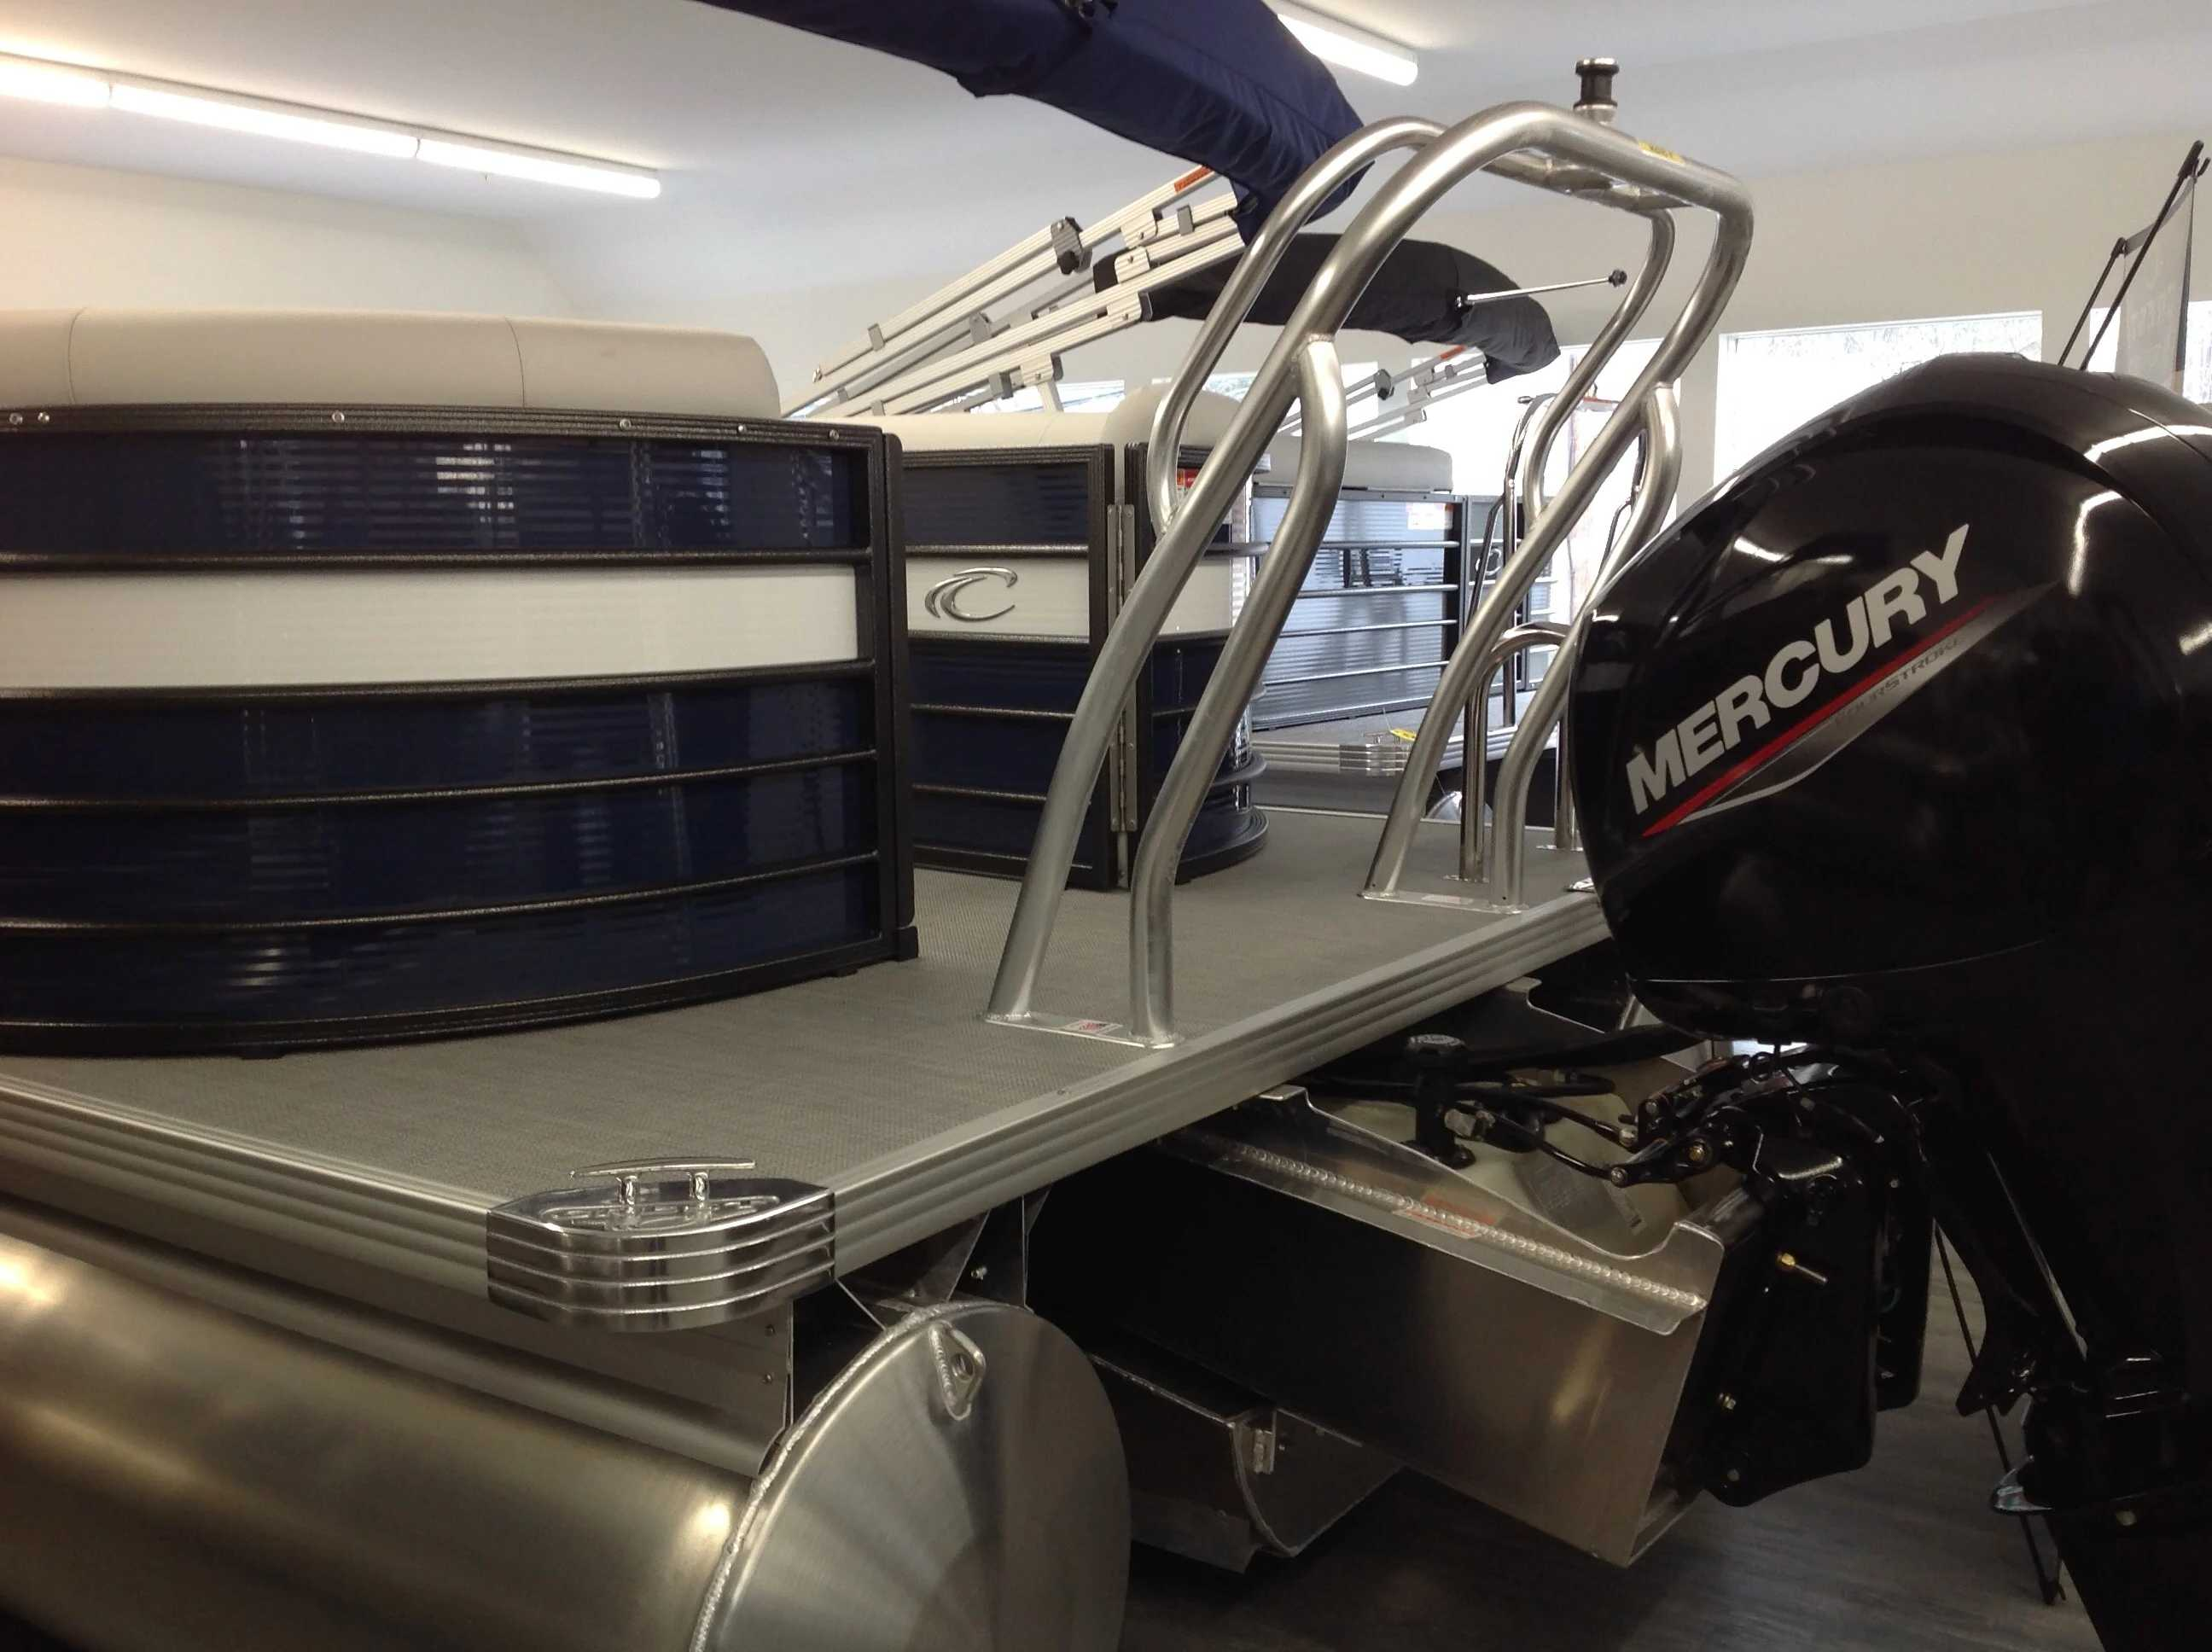 2021 Crest boat for sale, model of the boat is Cl Lx 220slc & Image # 13 of 13